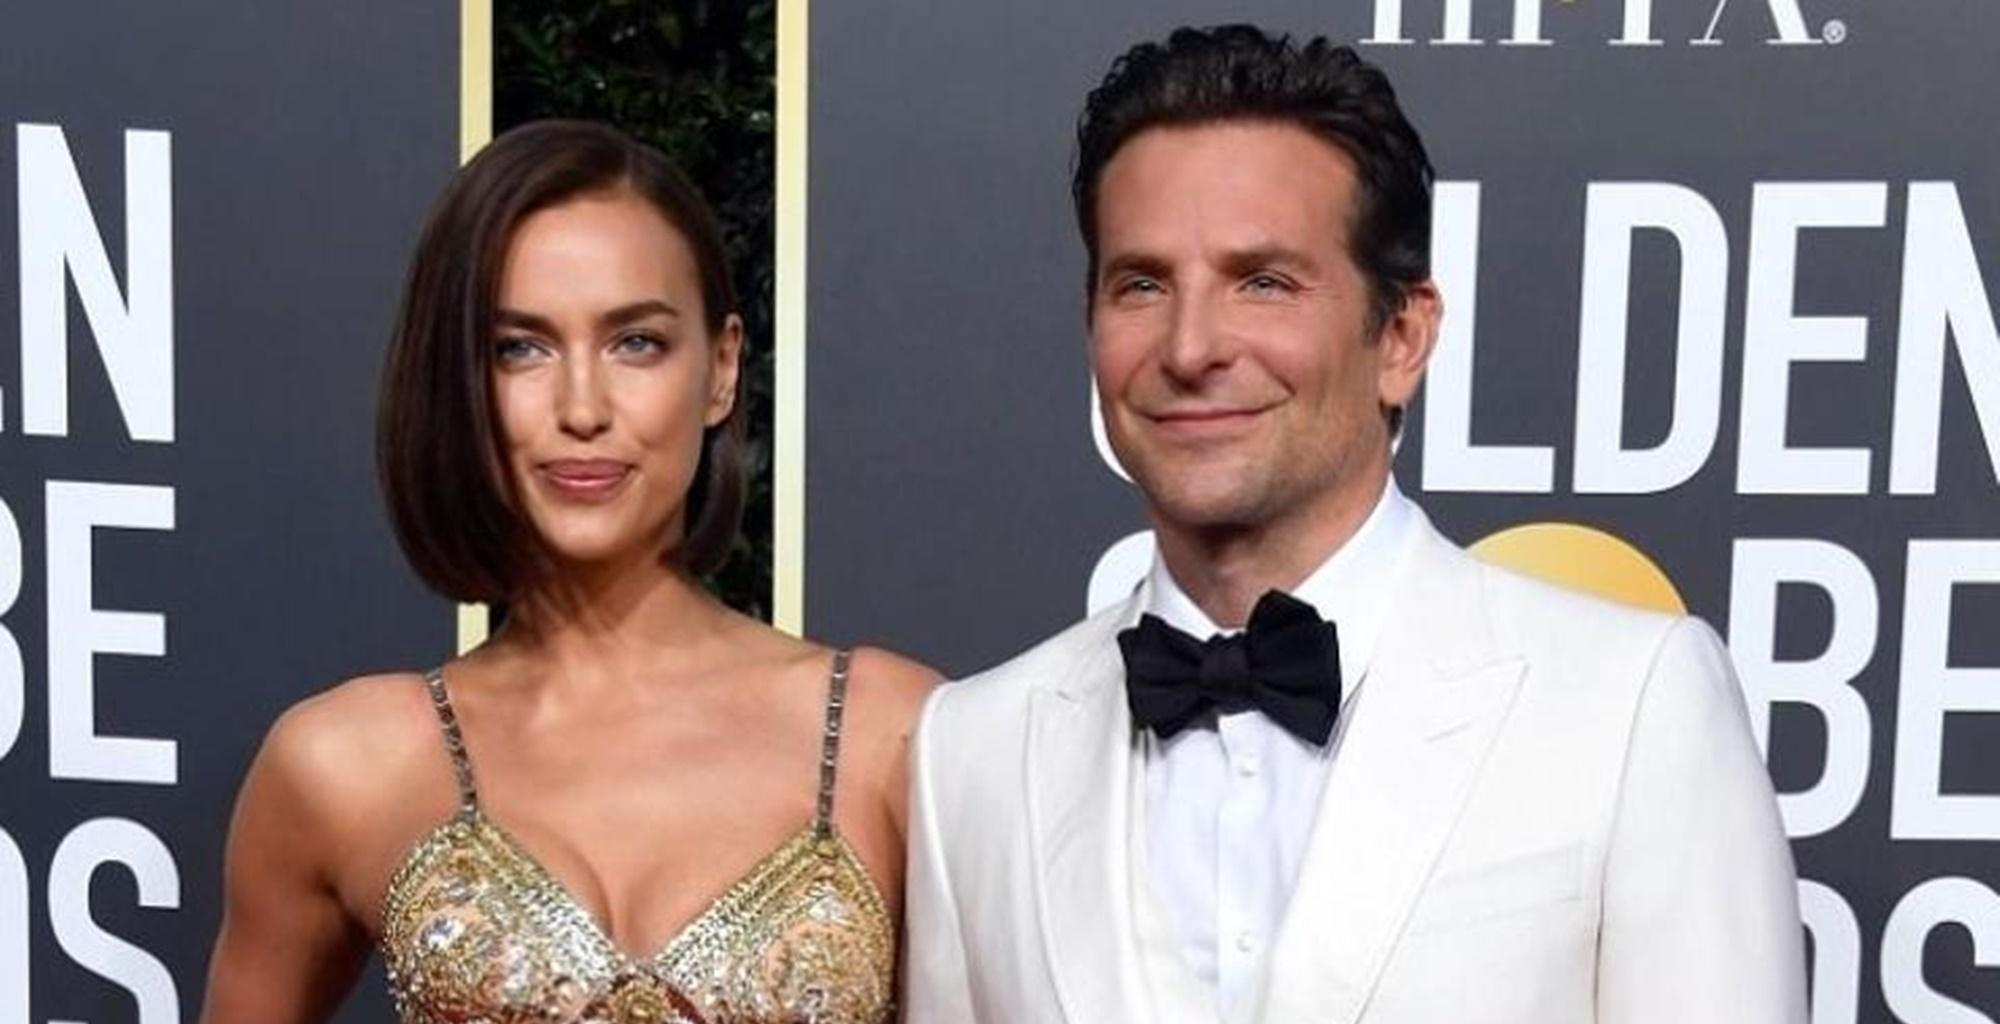 Bradley Cooper's Fans Say They Knew Things Would Not Last With Irina Shayk And Lady Gaga Is The Runner-up